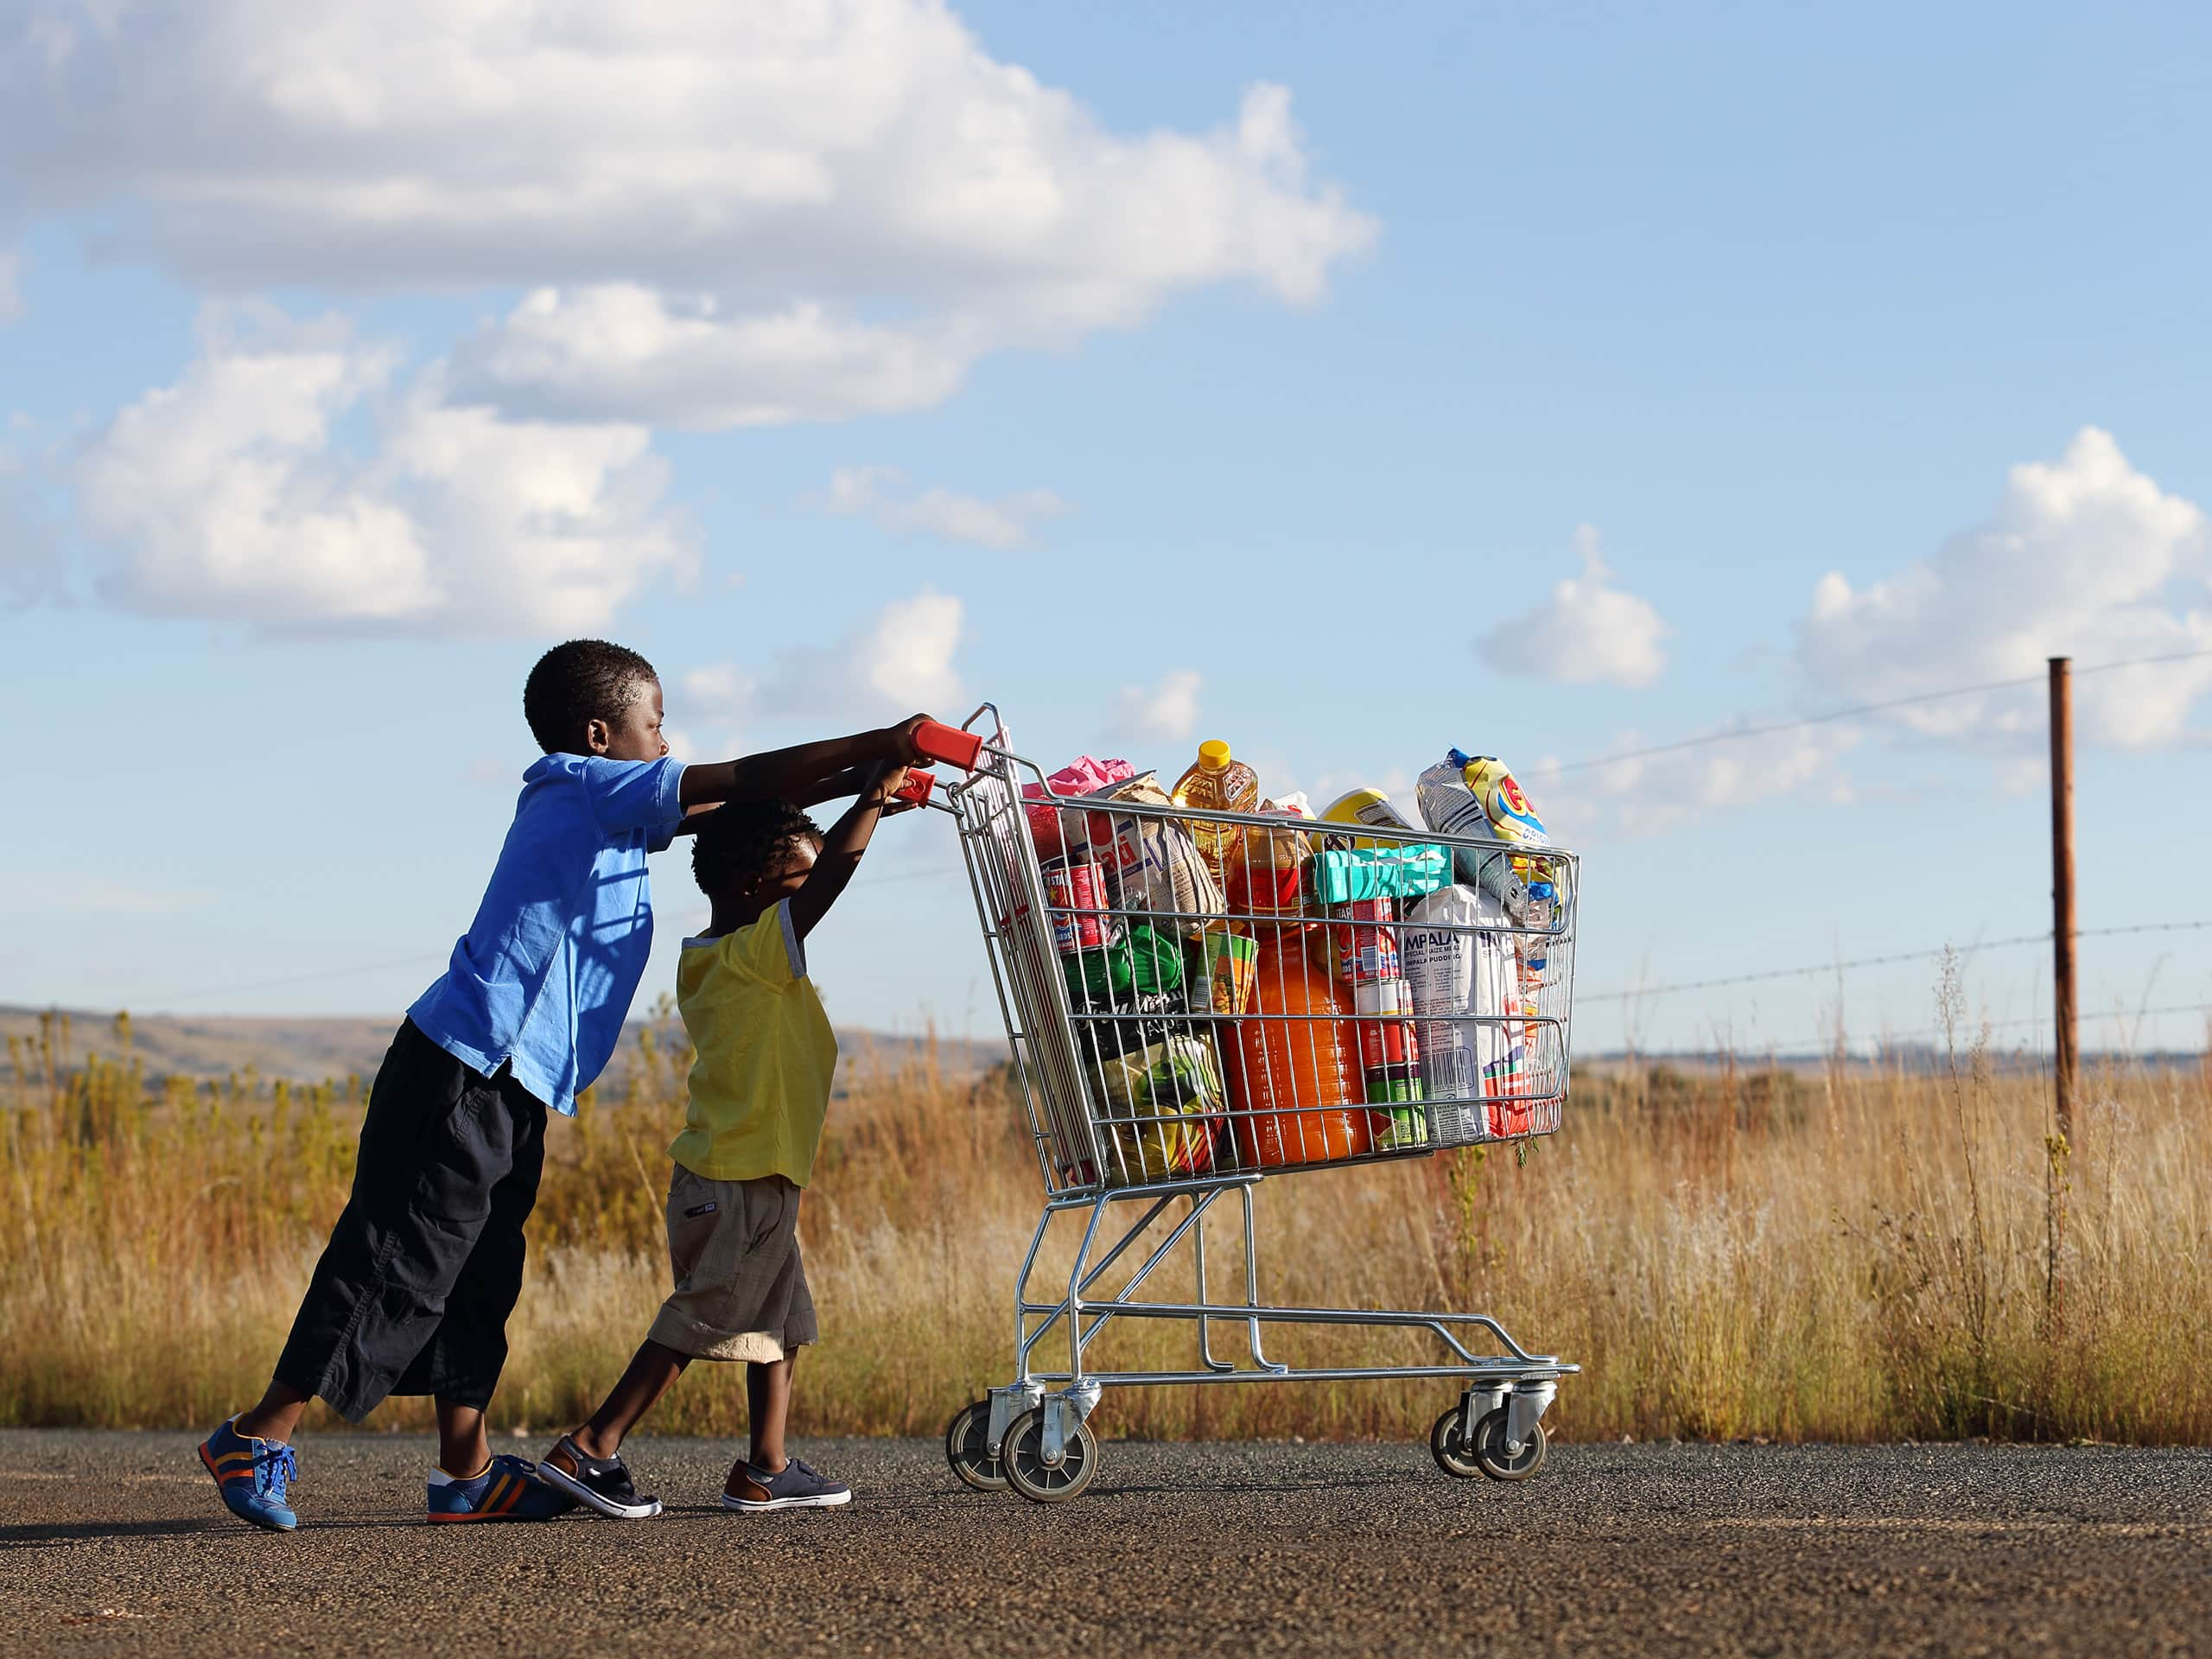 Two small boys pushing a trolley of food along a tarred road. Photograph by Elsa Young.